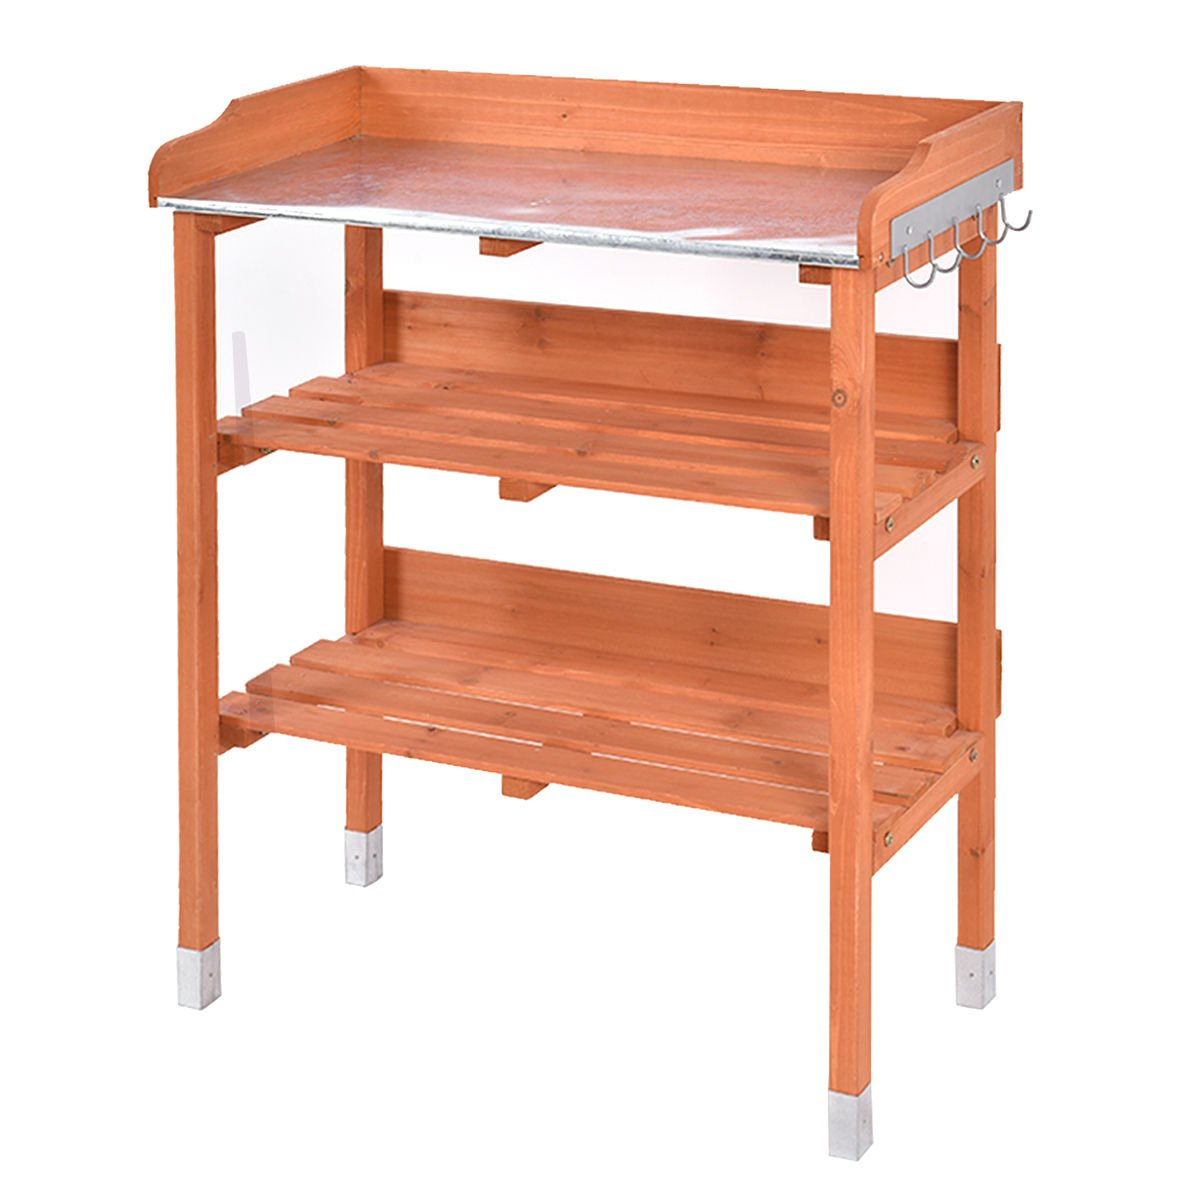 Outdoor Garden Wooden Potting Bench Work Station Table Tool Storage Shelf W/Hook